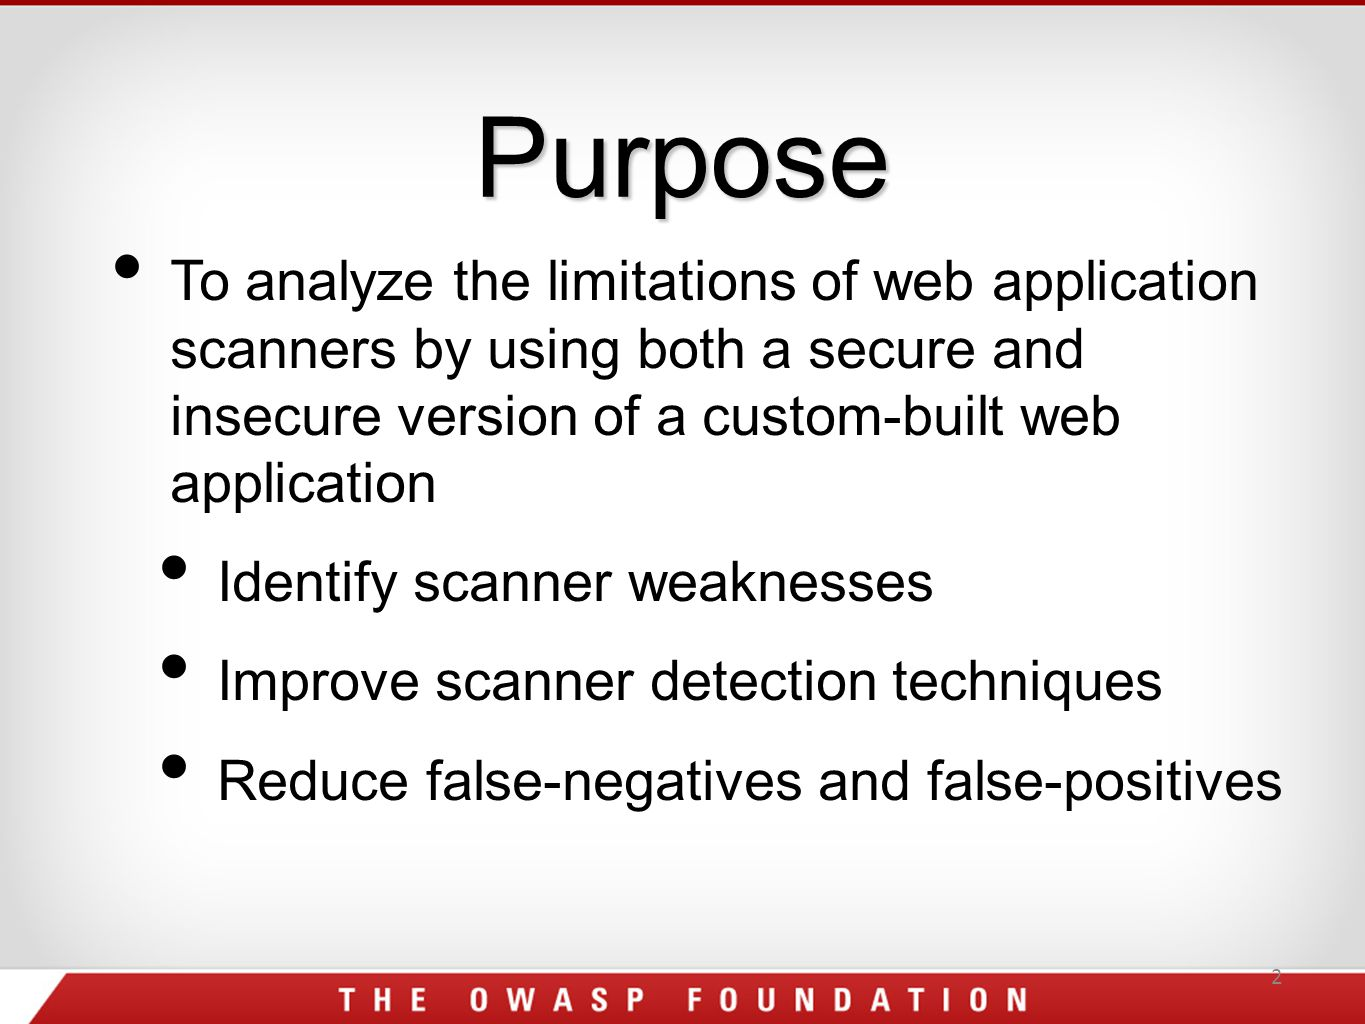 Purpose 2 To analyze the limitations of web application scanners by using both a secure and insecure version of a custom-built web application Identify scanner weaknesses Improve scanner detection techniques Reduce false-negatives and false-positives